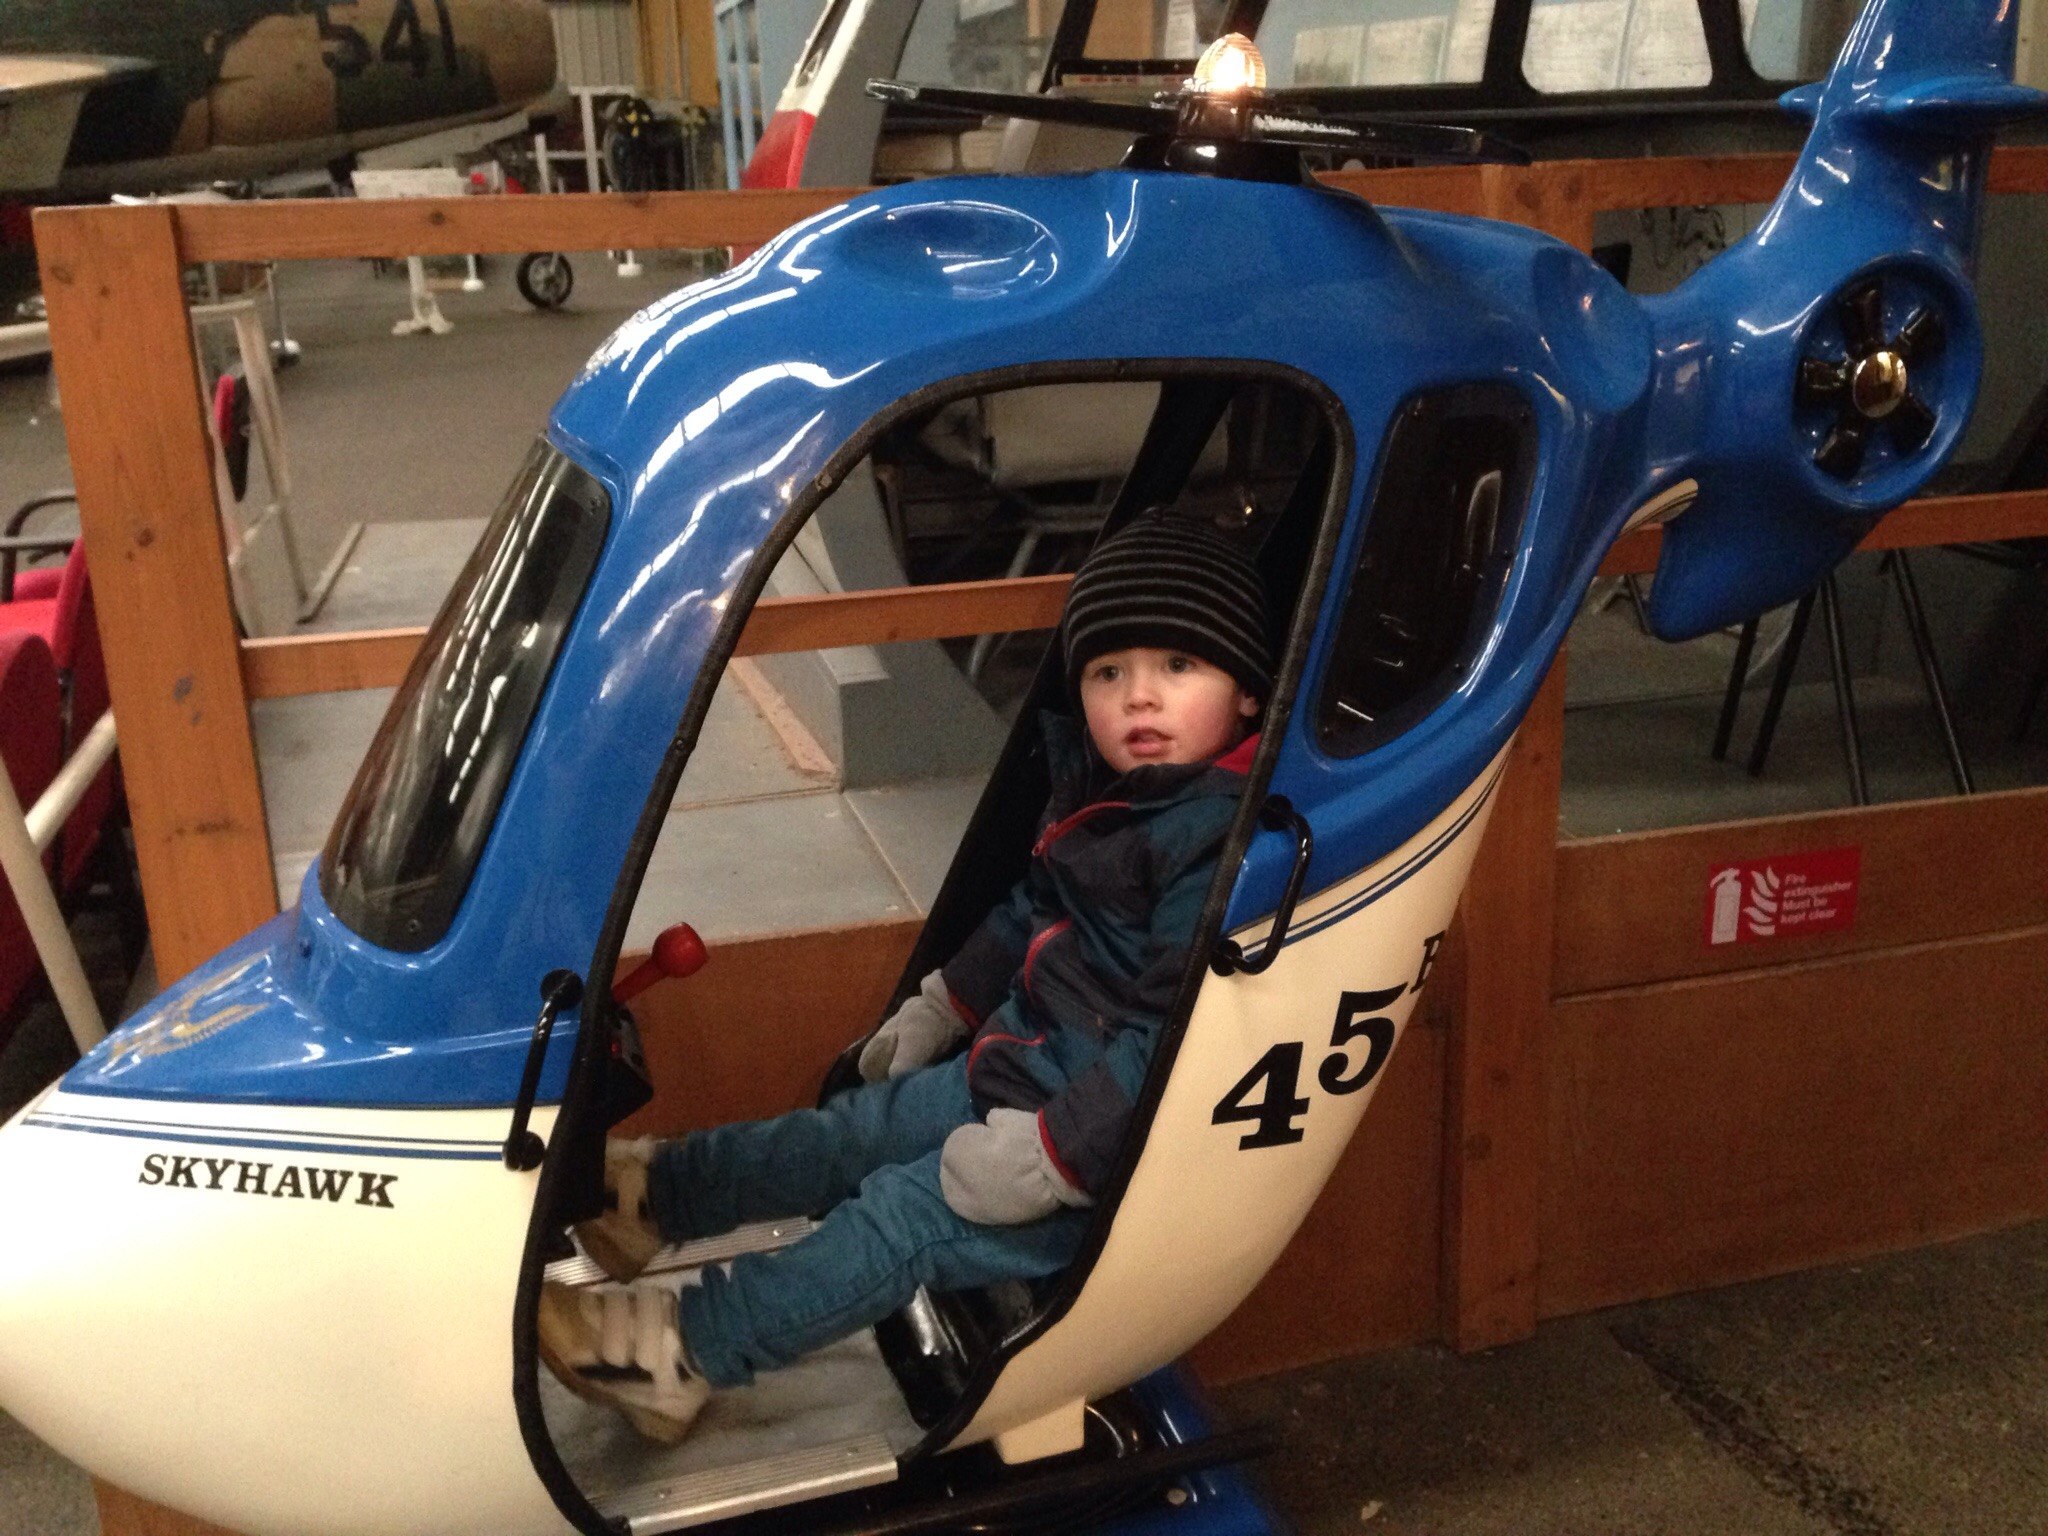 helicopter ride at sunderland air museum days out with a toddler north east england